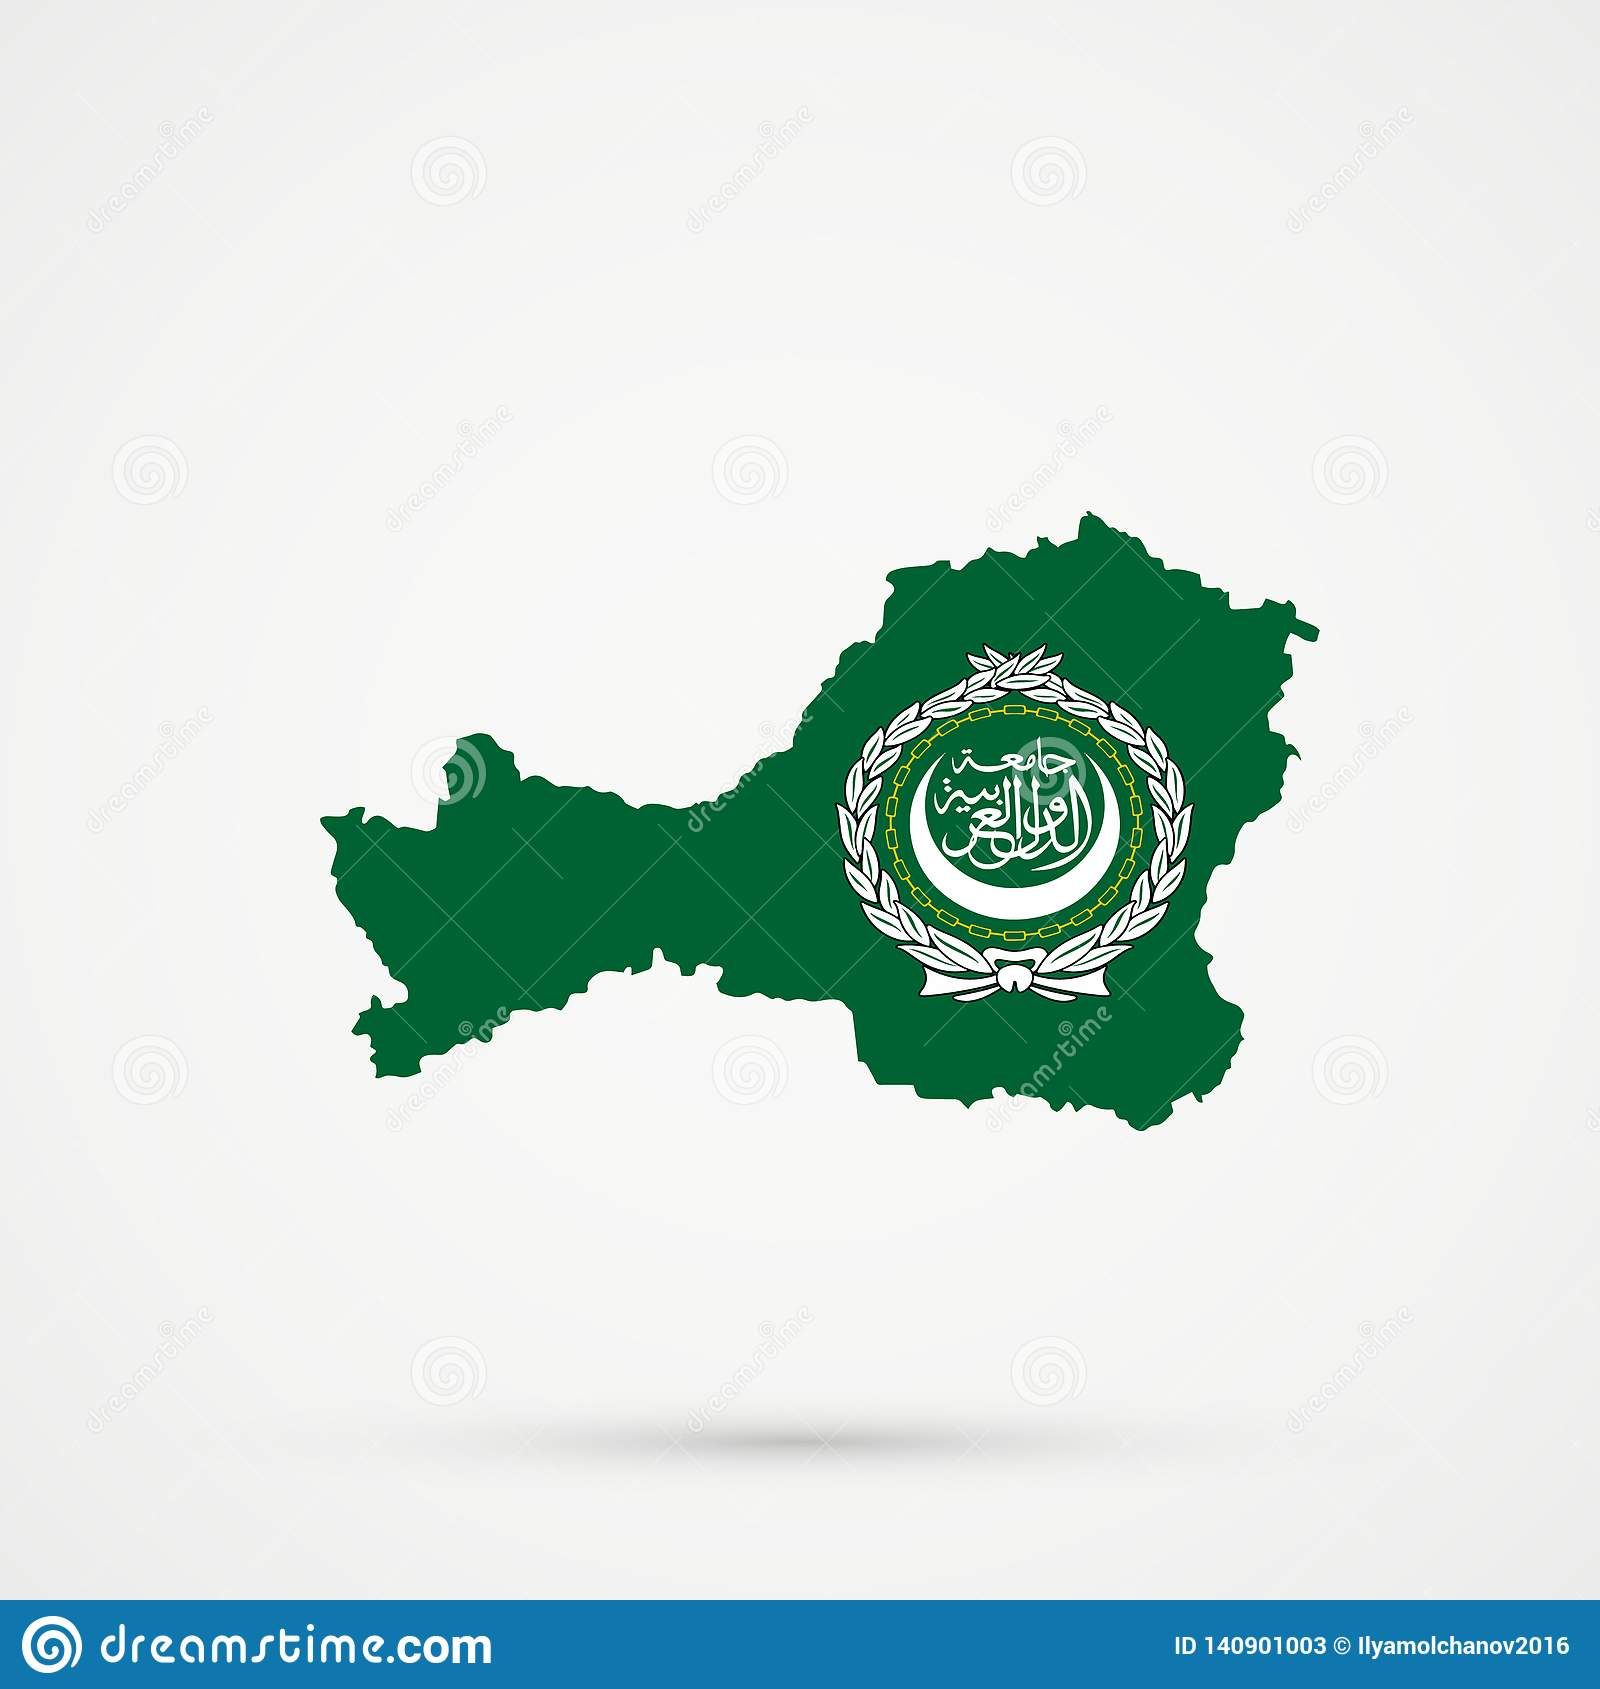 Picture of: Tuva Republic Map In Arab League Flag Colors Editable Vector Stock Vector Illustration Of League Europe 140901003